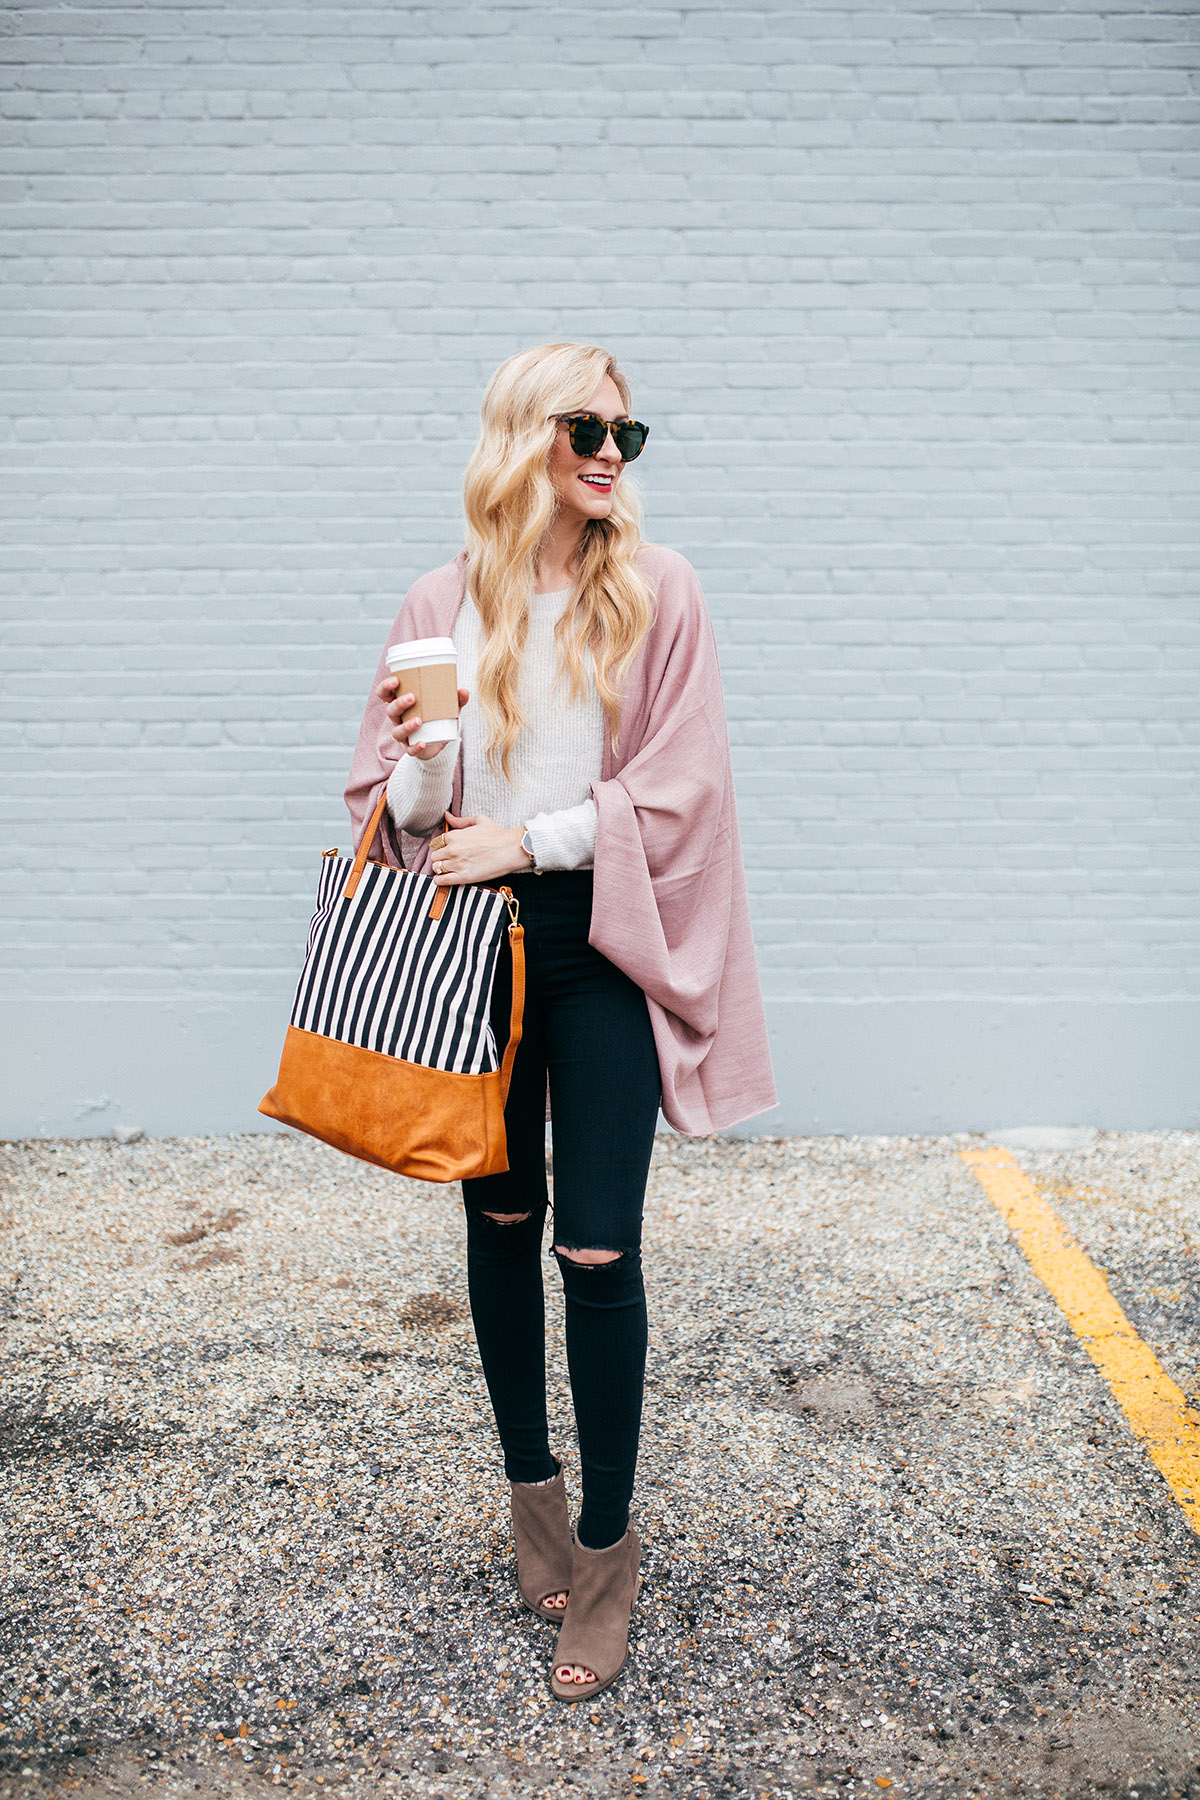 This striped tote would make a great work bag!